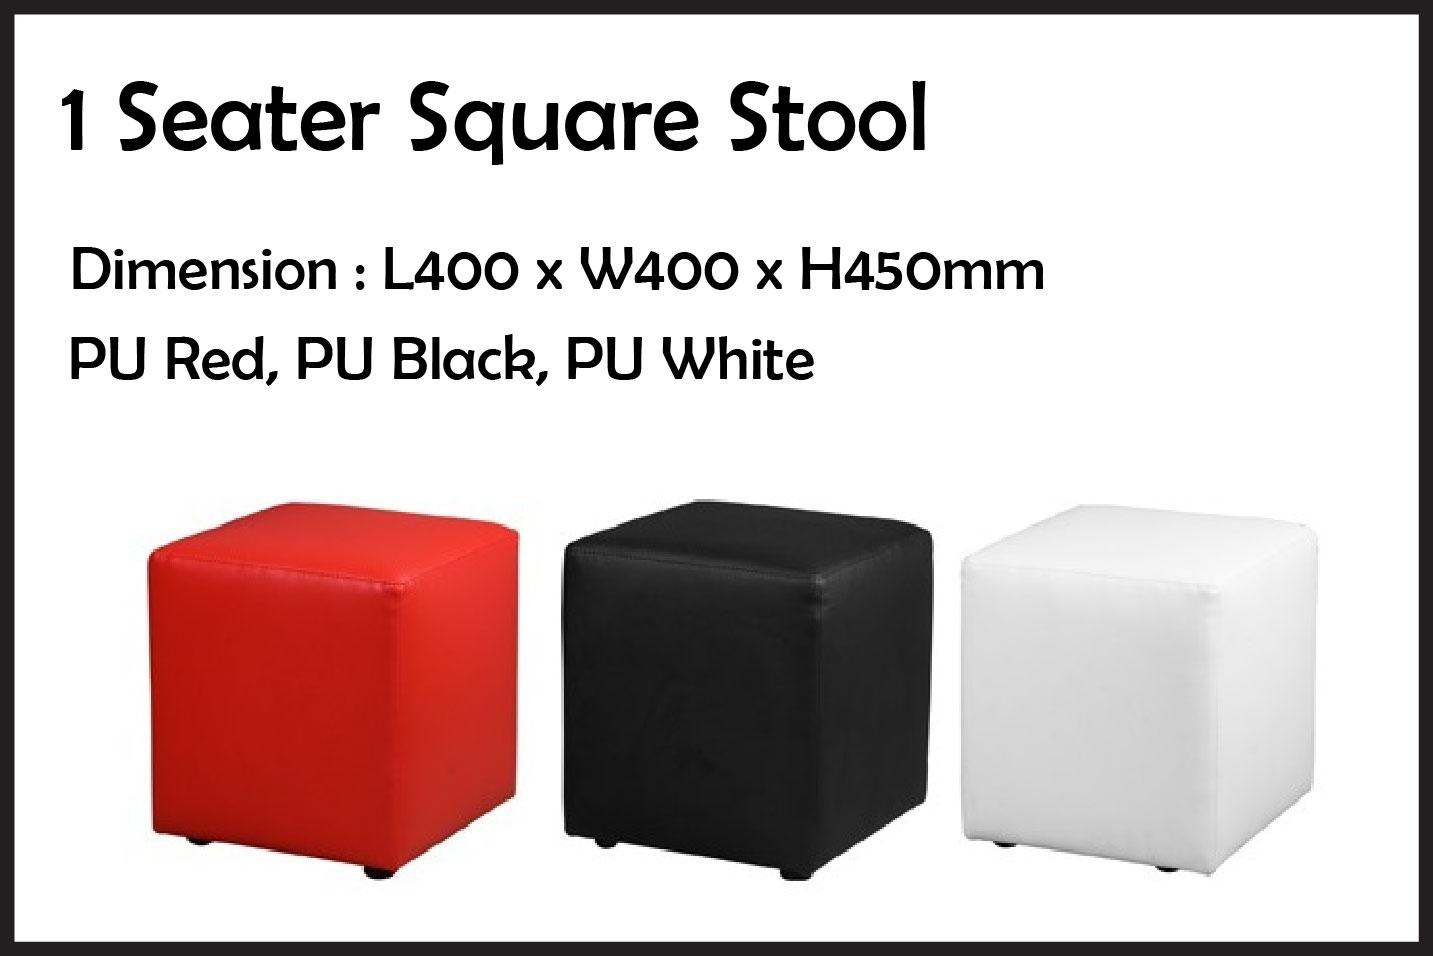 Premium High Quality 1 Seater Square Stool Mary Stool